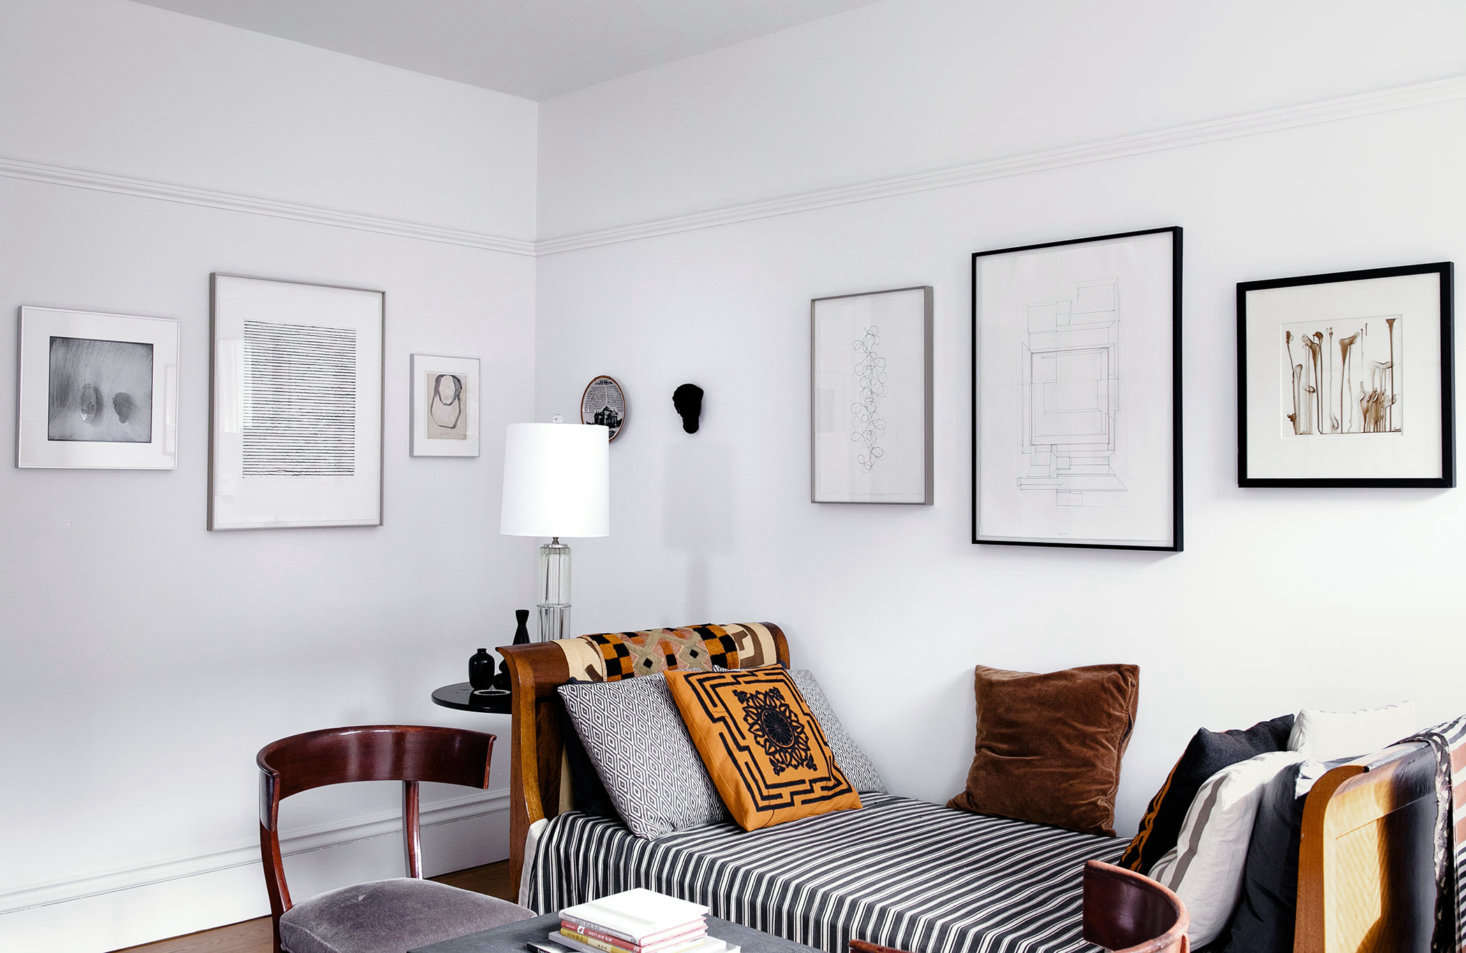 The sitting room enjoys views into both the living and dining rooms. To emphasize the seamless flow between spaces, the design duo hung a continuous line of art leading from room to room.